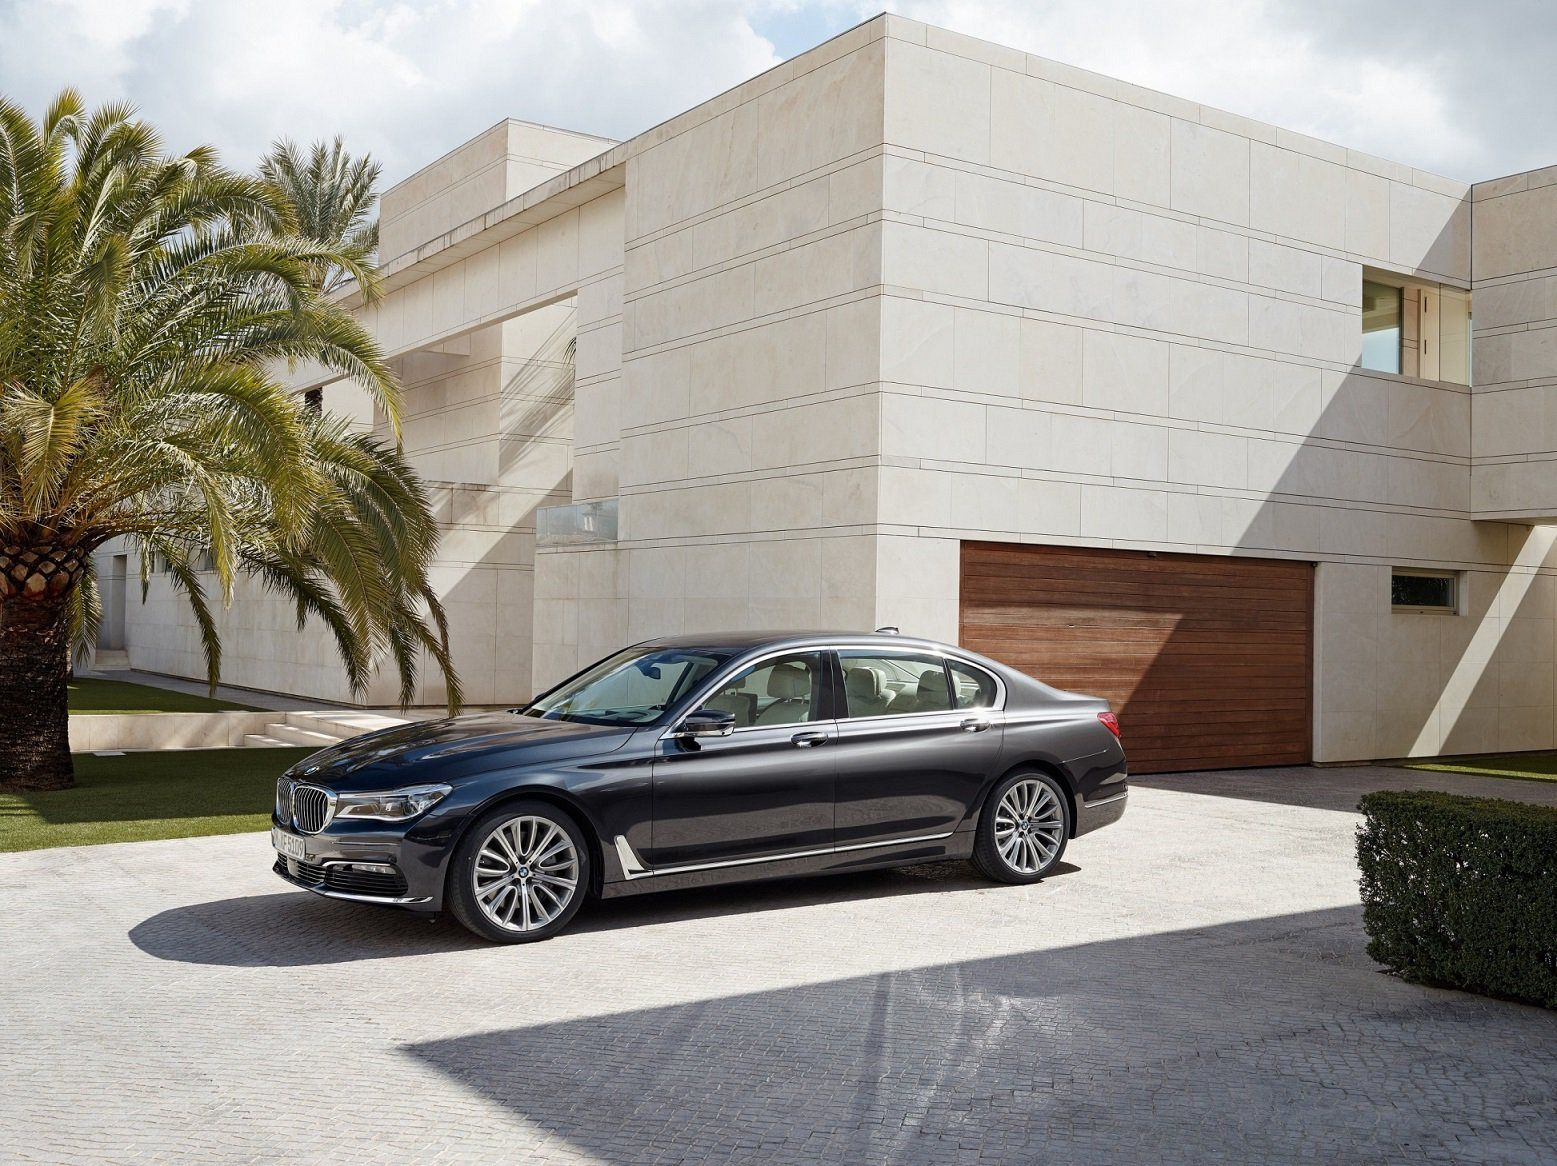 Sneak Peek on The sixth generation of BMW 7 series!